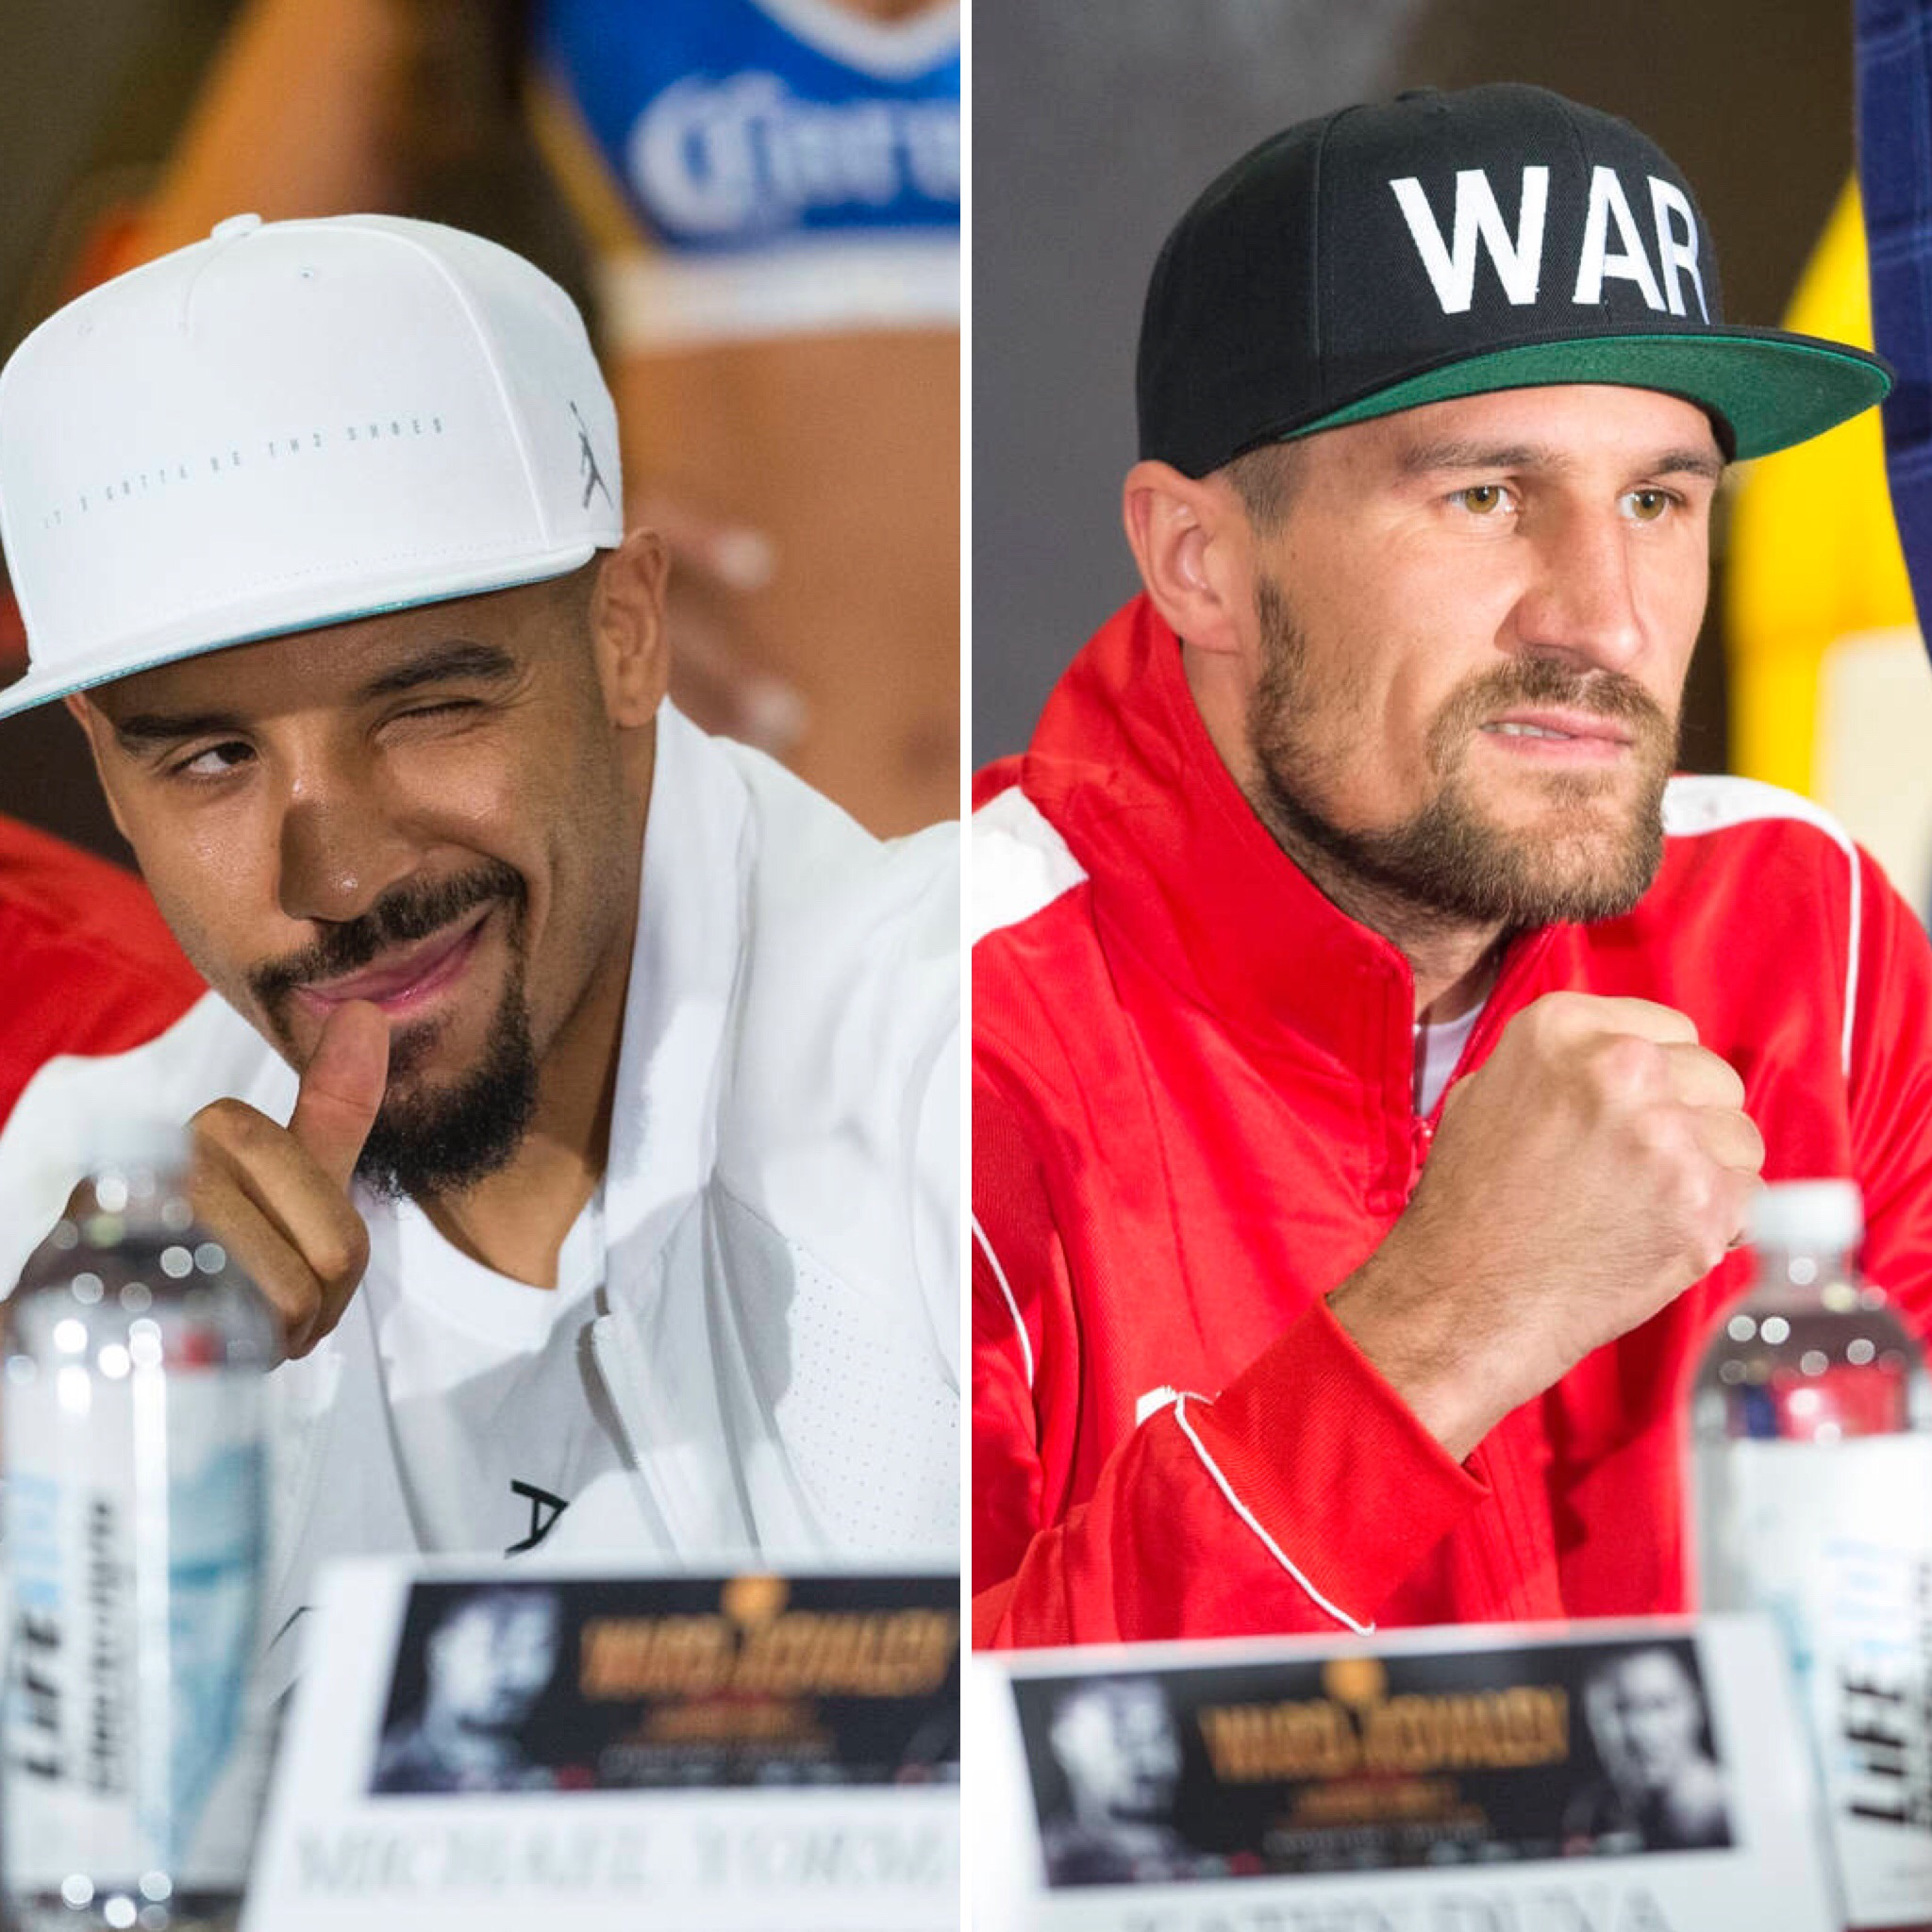 Ward-Kovalev held final press conference